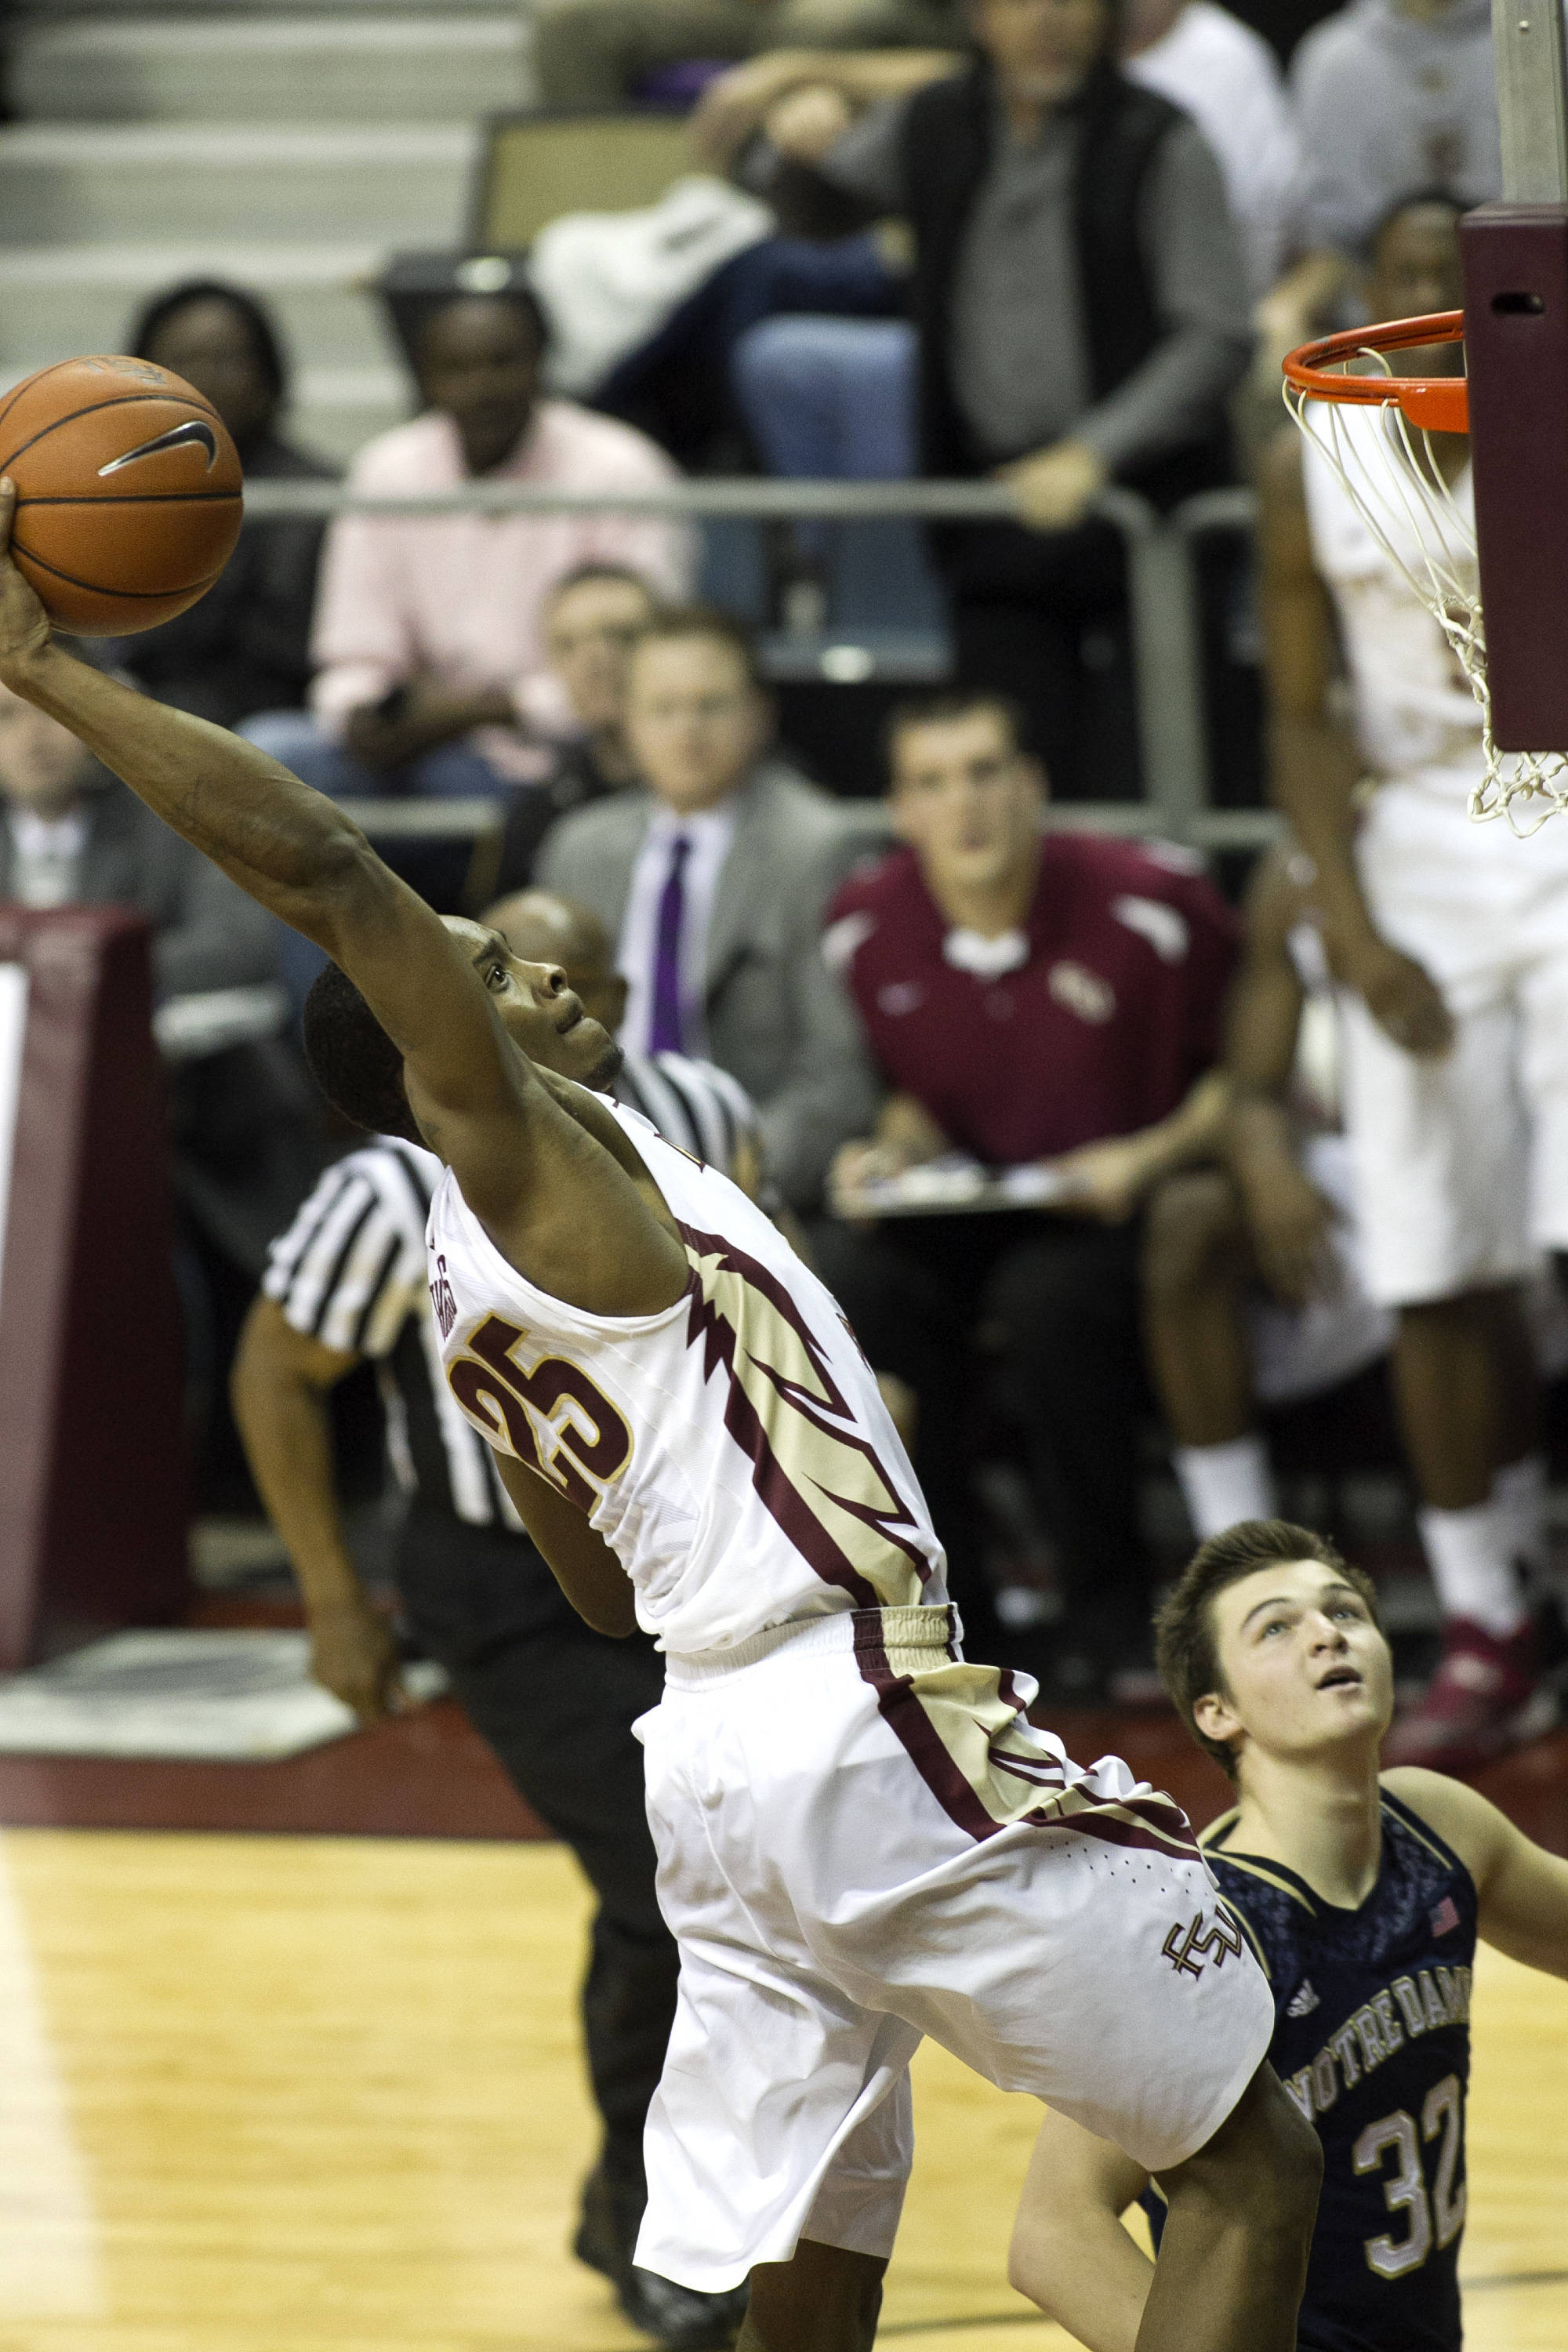 Aaron Thomas (25) with a big jam, FSU vs Notre Dame, 1-21-14, (Photo's by Steve Musco)